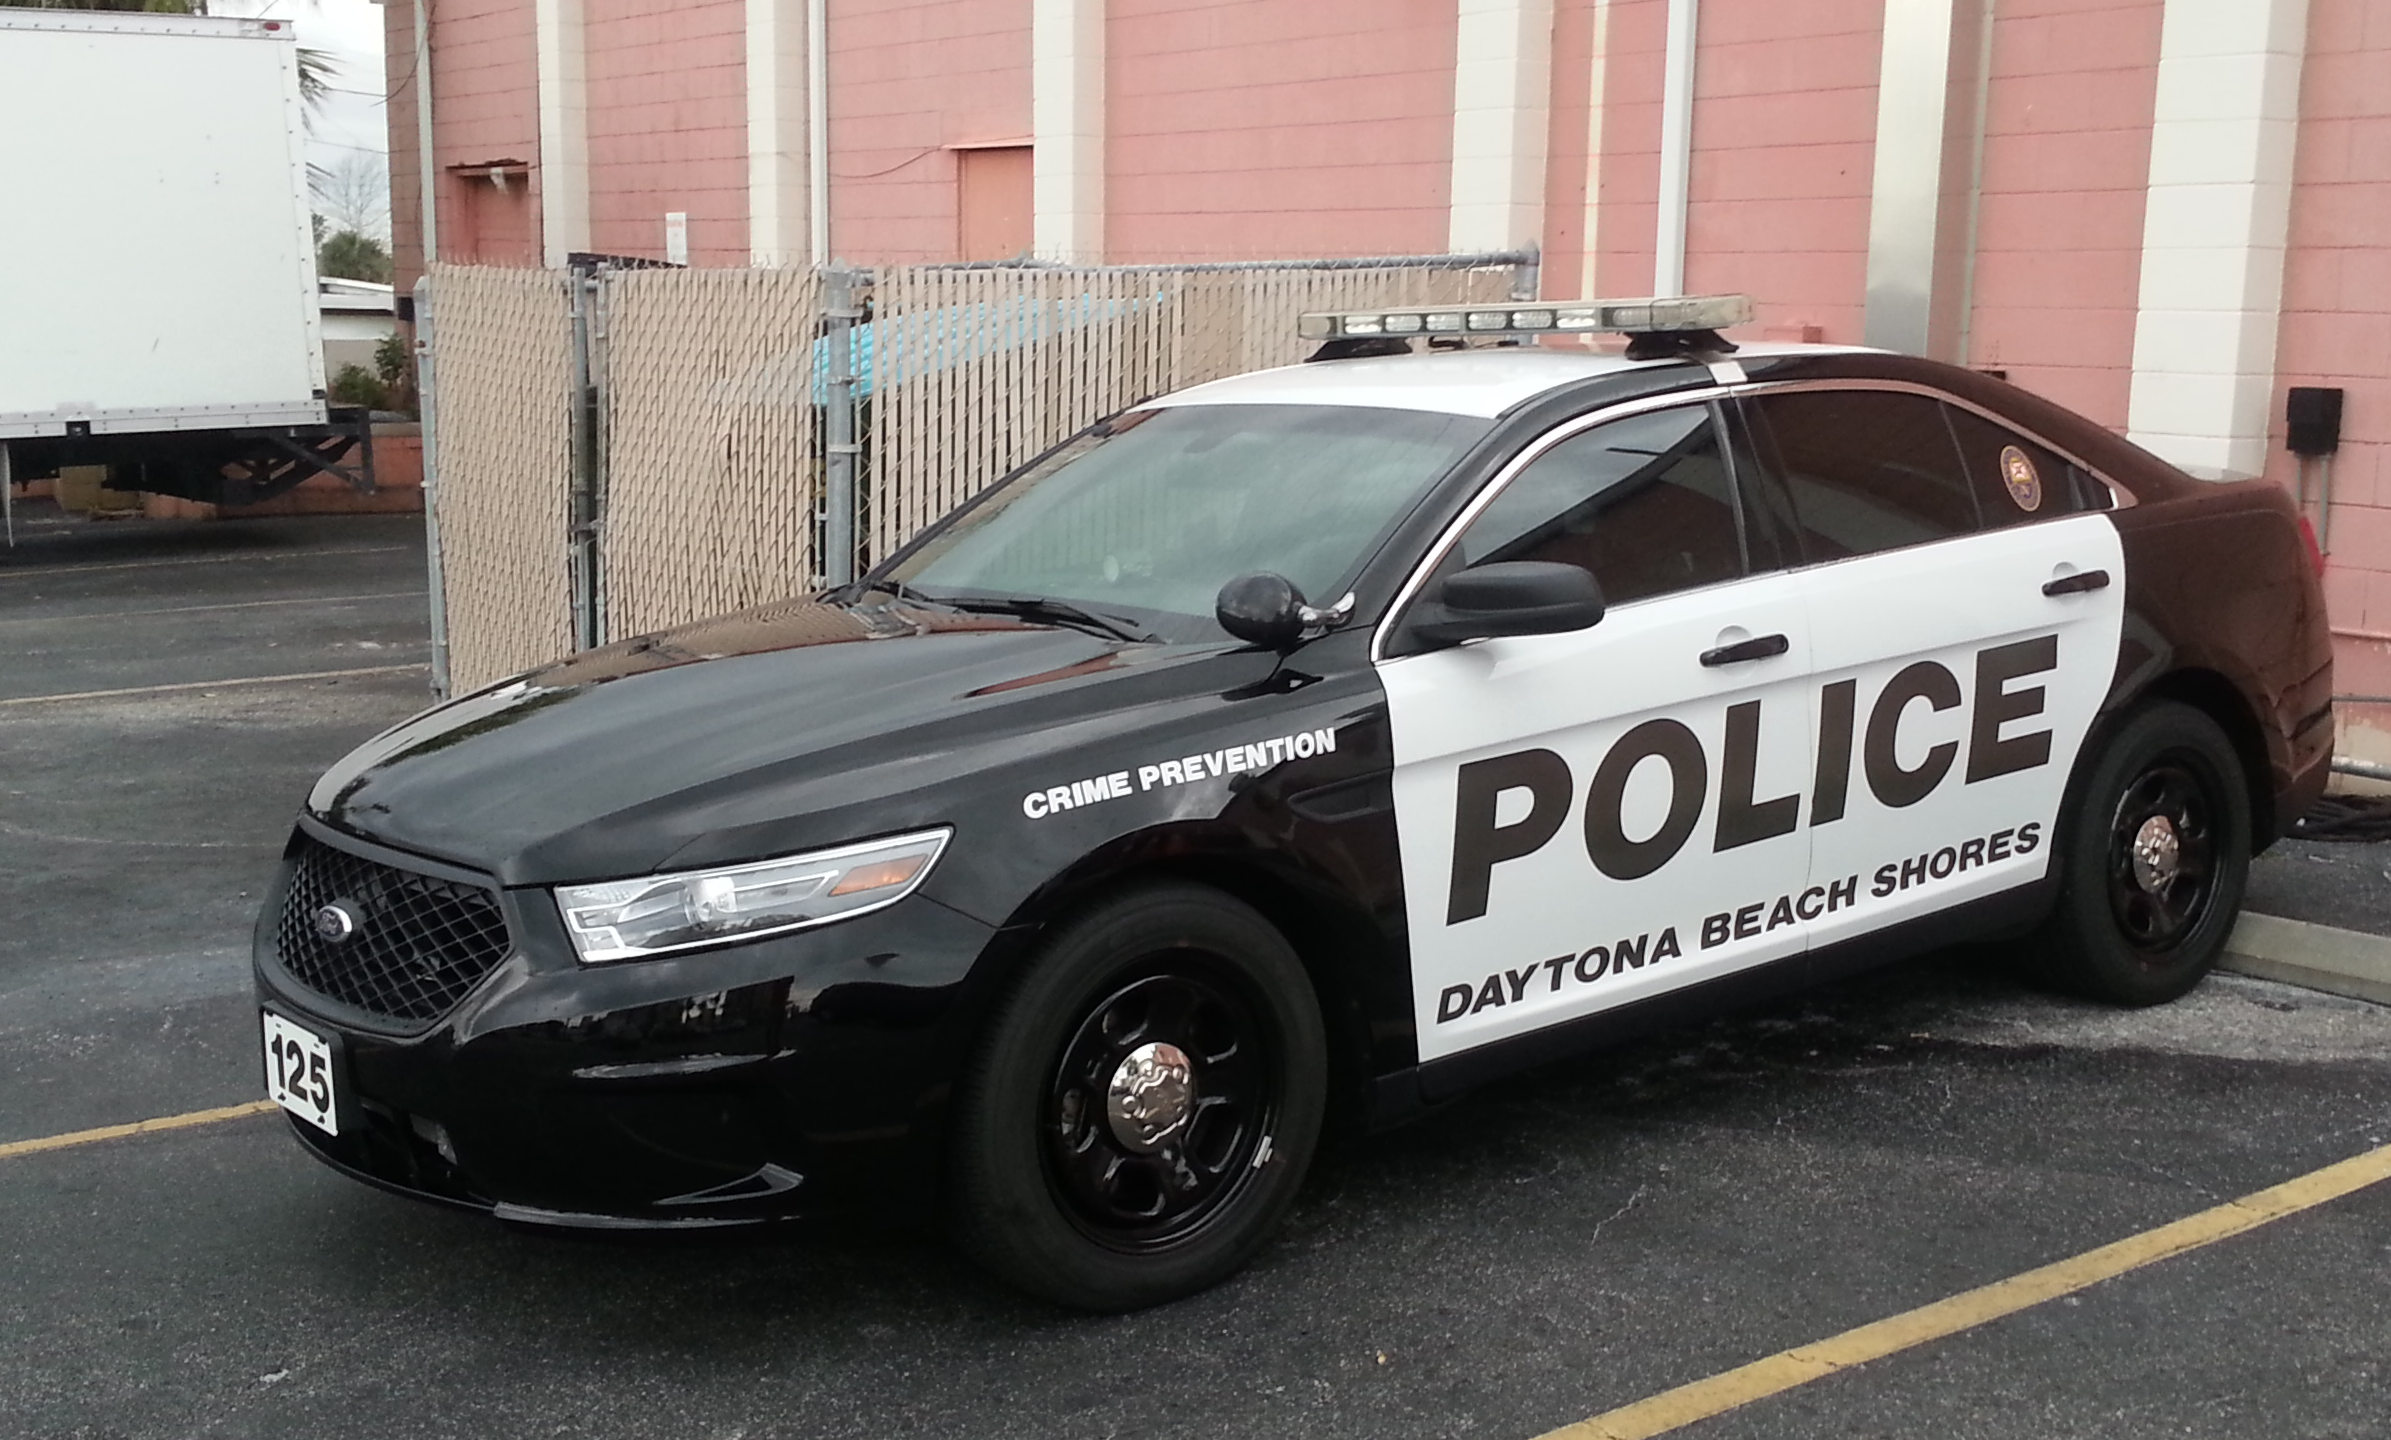 The City Of Daytona Beach Police Department